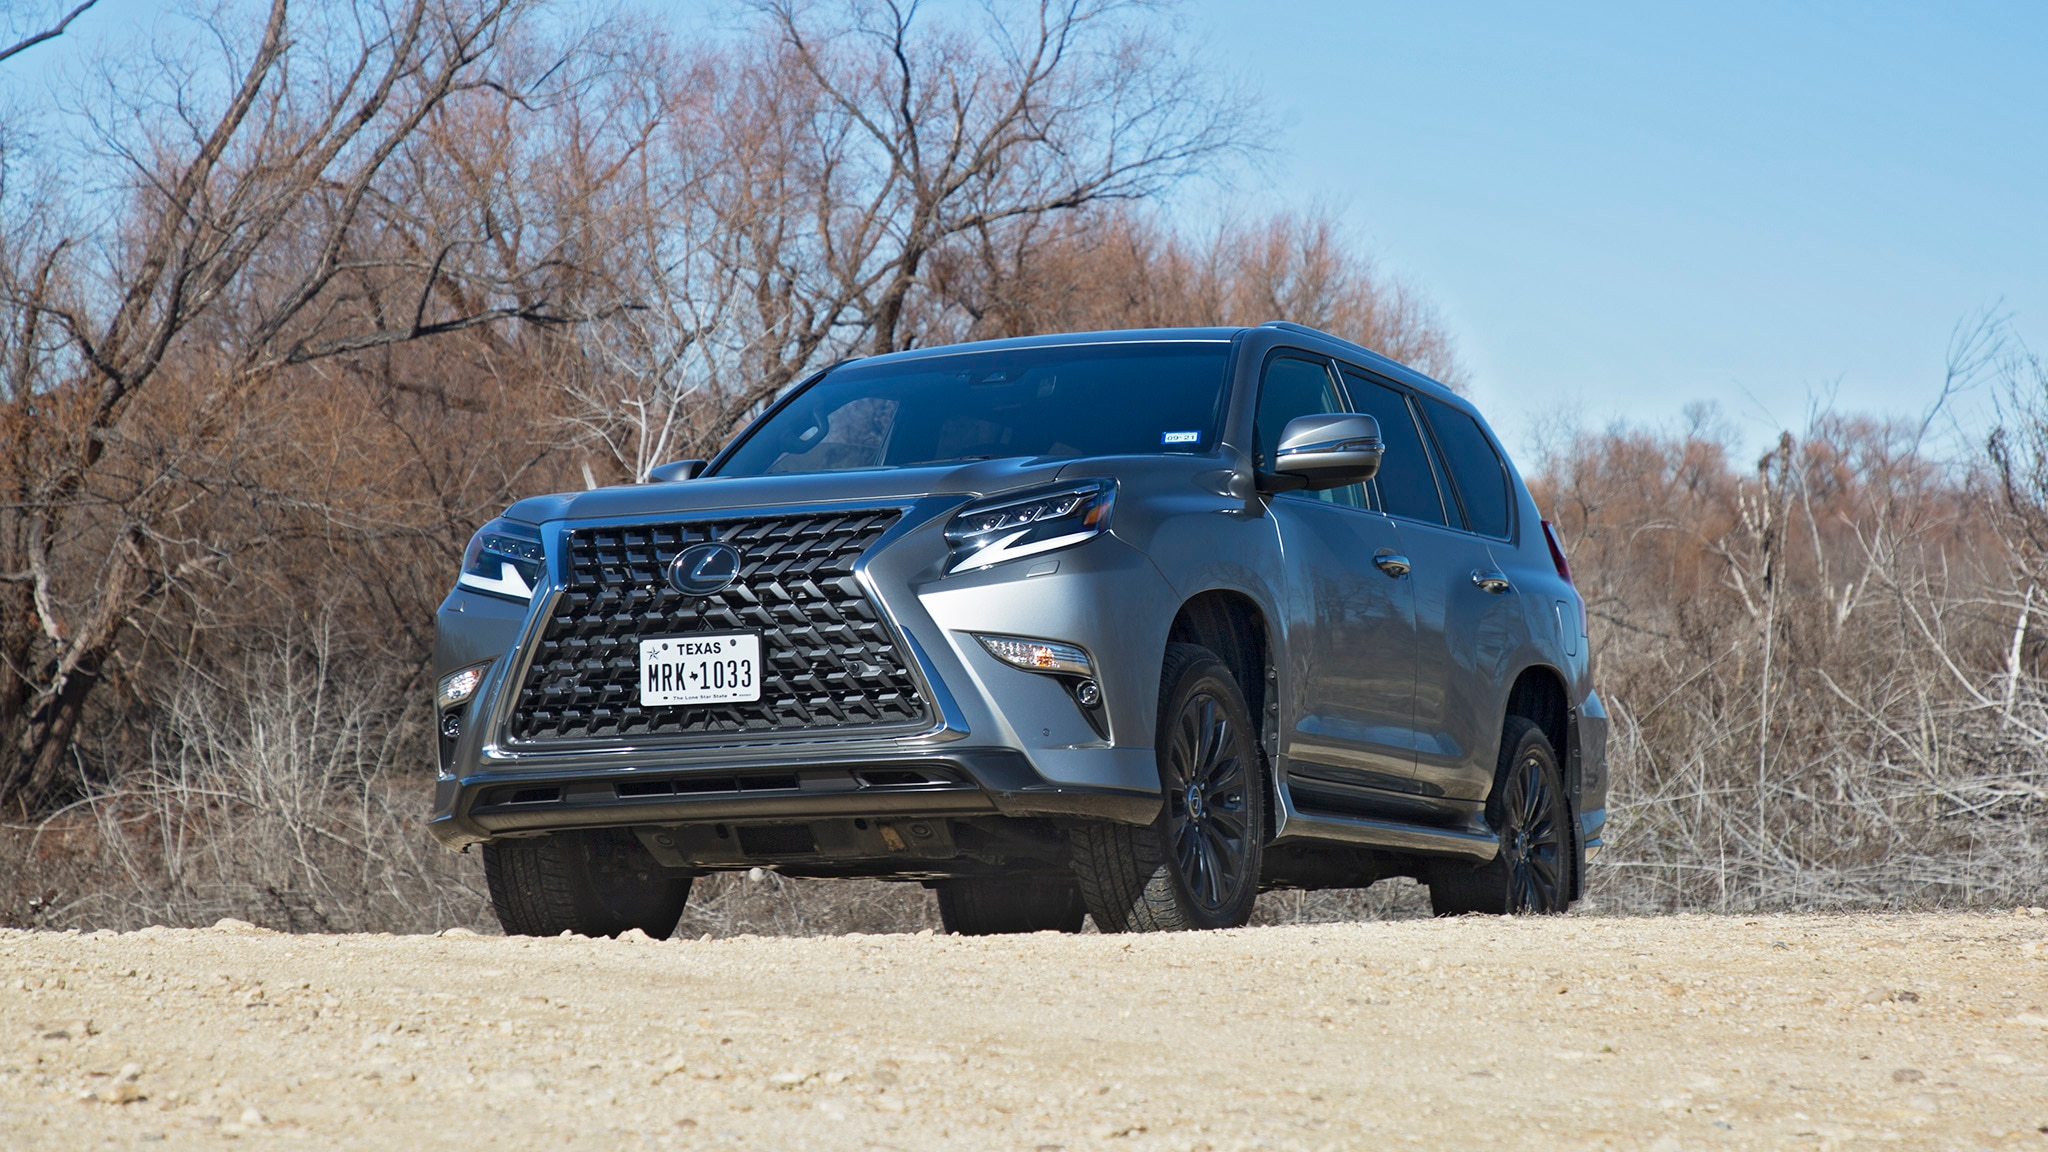 2020 Lexus GX460 Reminds Us Why We Love Old-School SUVs